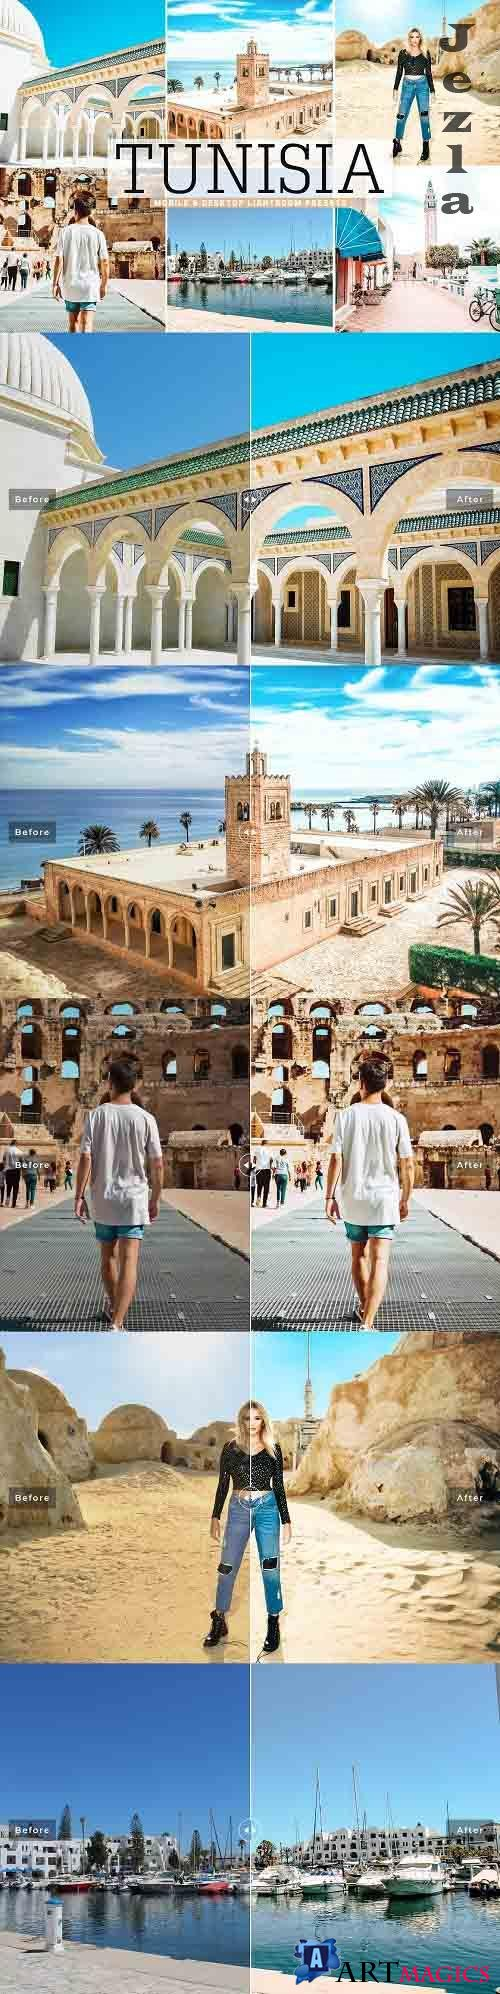 Tunisia Pro Lightroom Presets - 5607324 - Mobile & Desktop